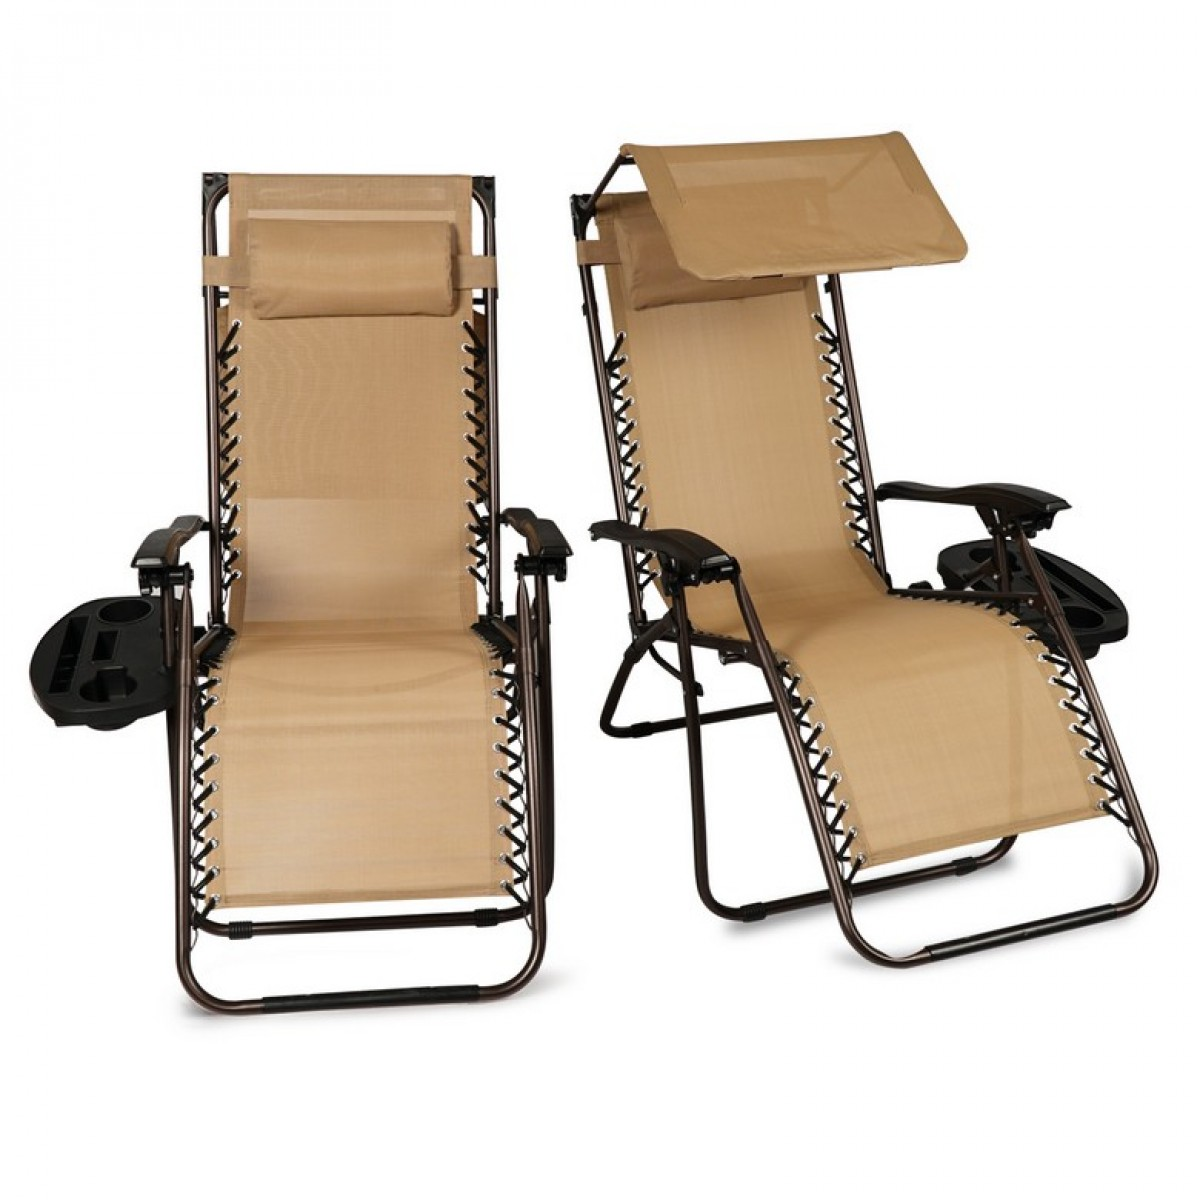 BELLEZE 2 Pack Zero Gravity Chair W/ Canopy Top Reclining Lounge Chairs  Outdoor Patio W/ Cup ...